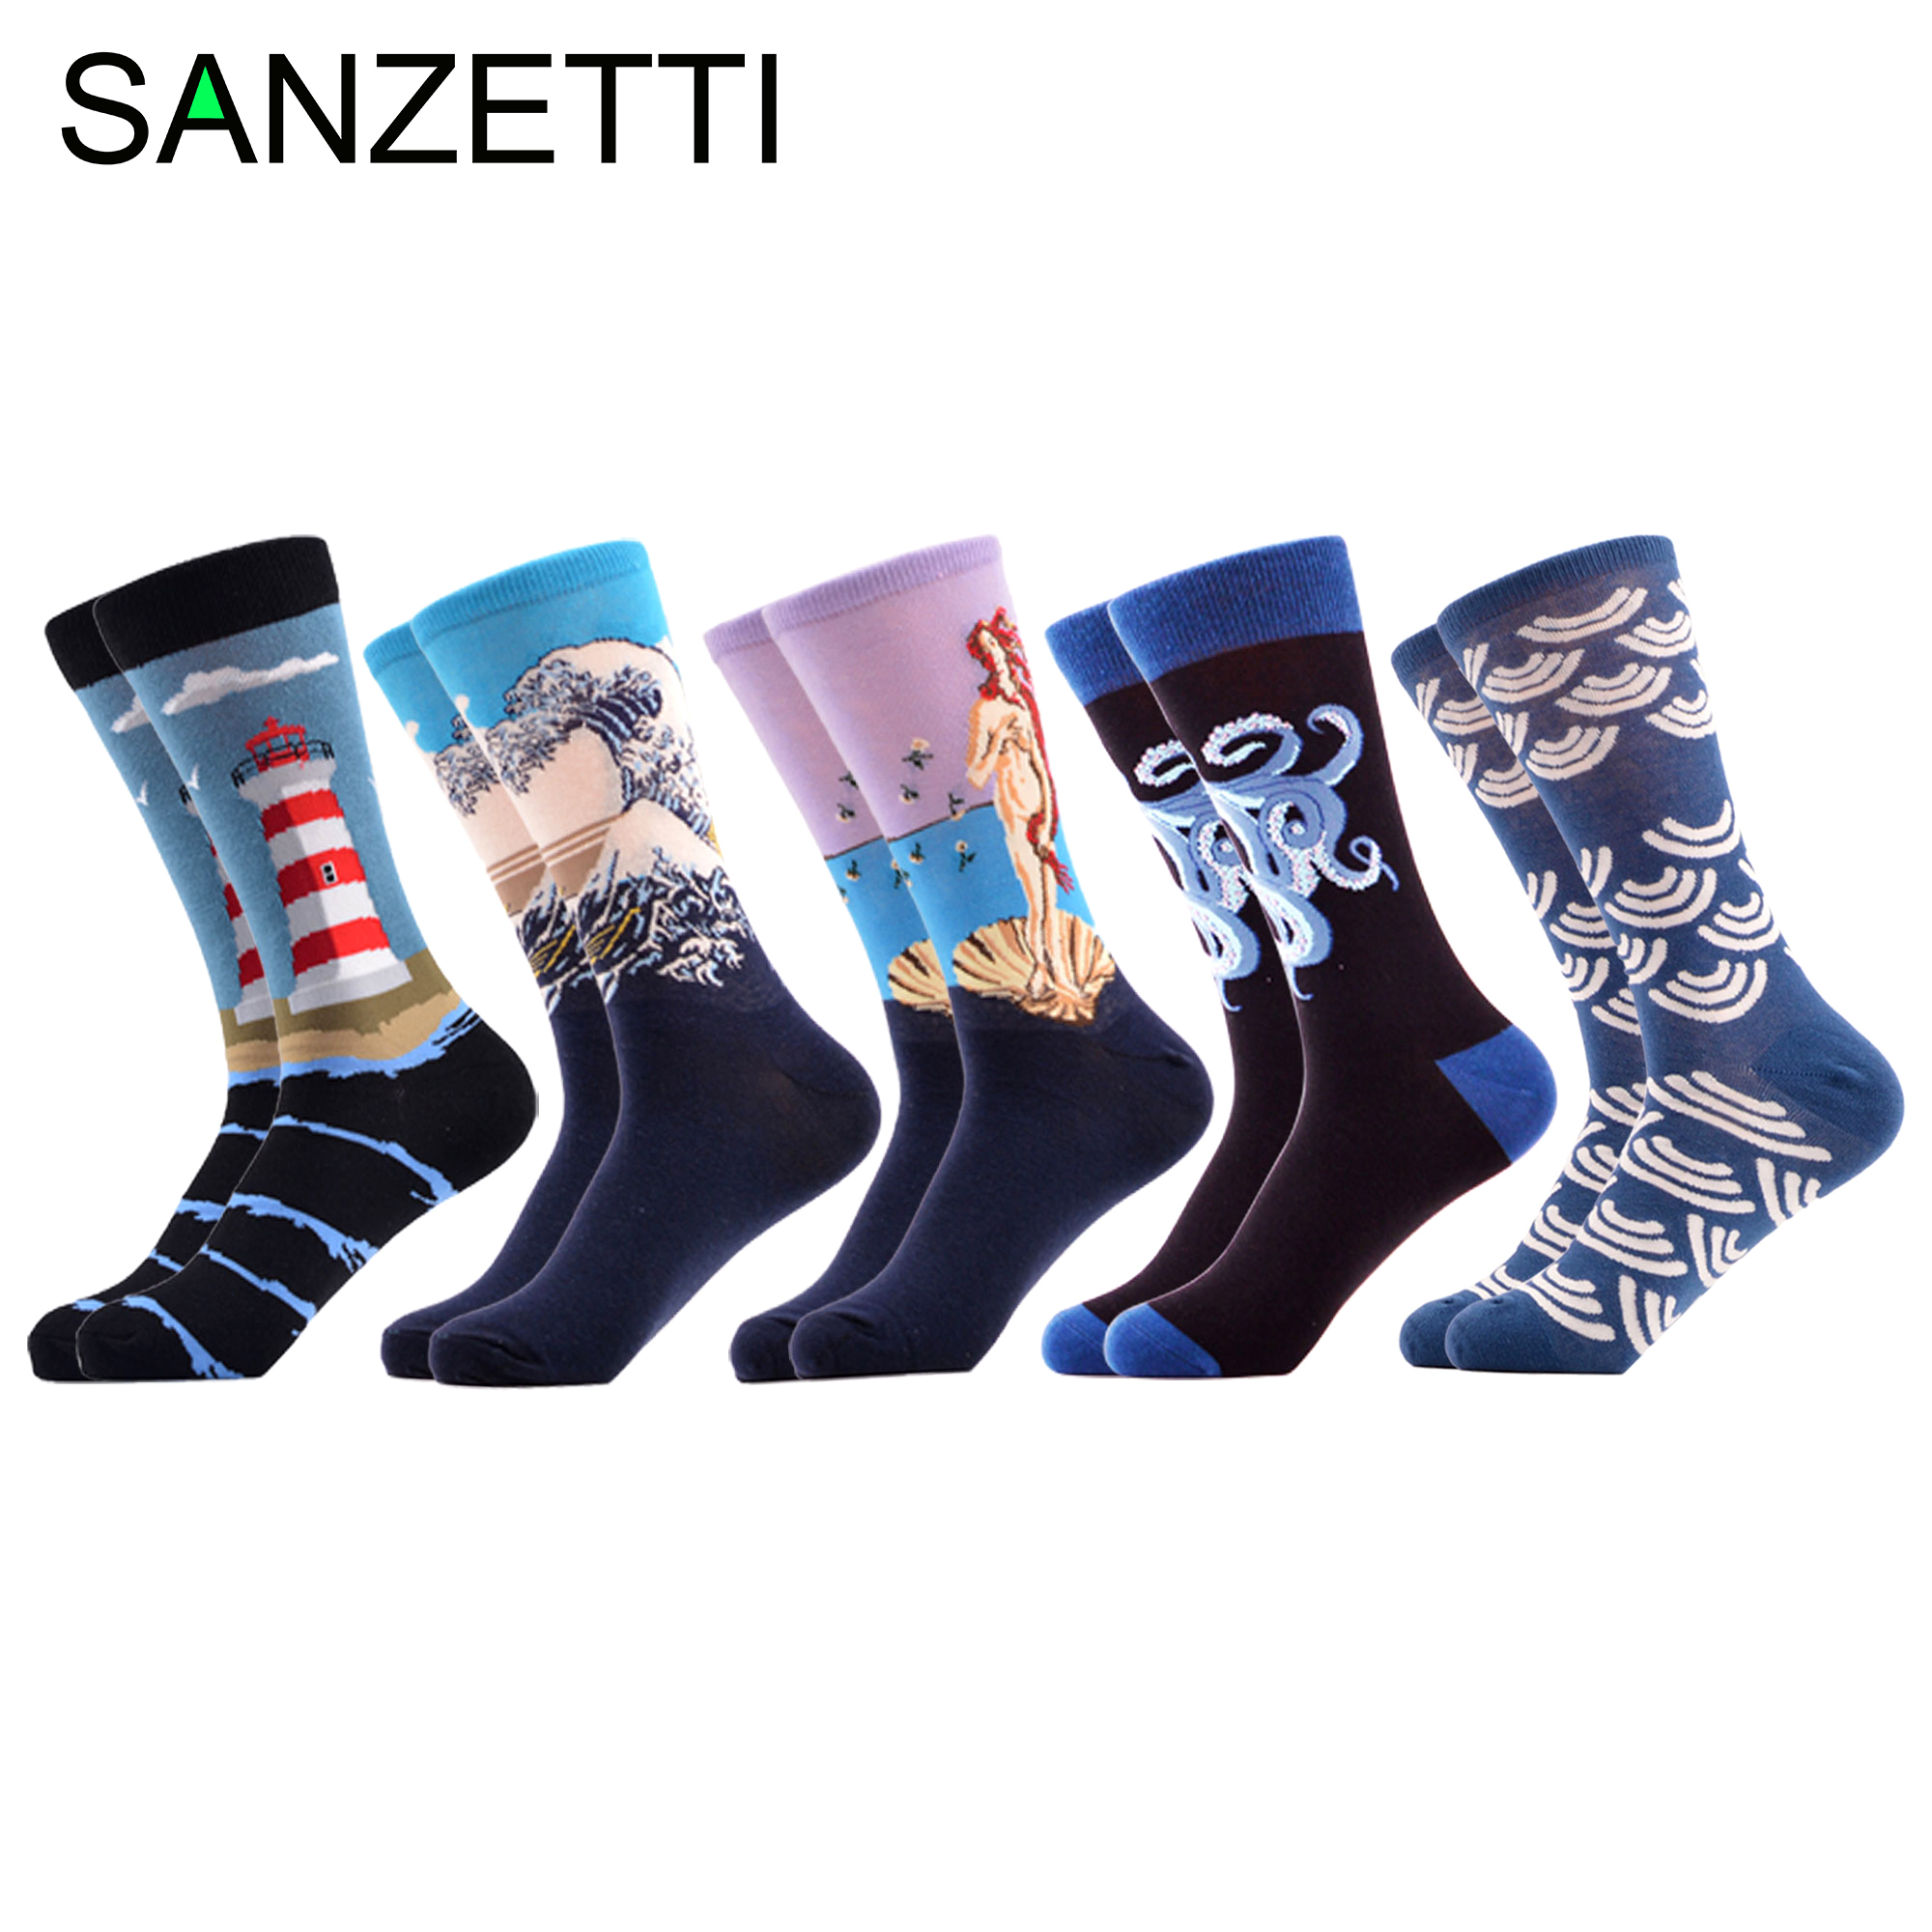 SANZETTI 5 Pairs Mens Casual Combed Cotton Crew Socks Personality Funny Happy Ocean Pattern Party Gifts Creative Dress Gym Socks